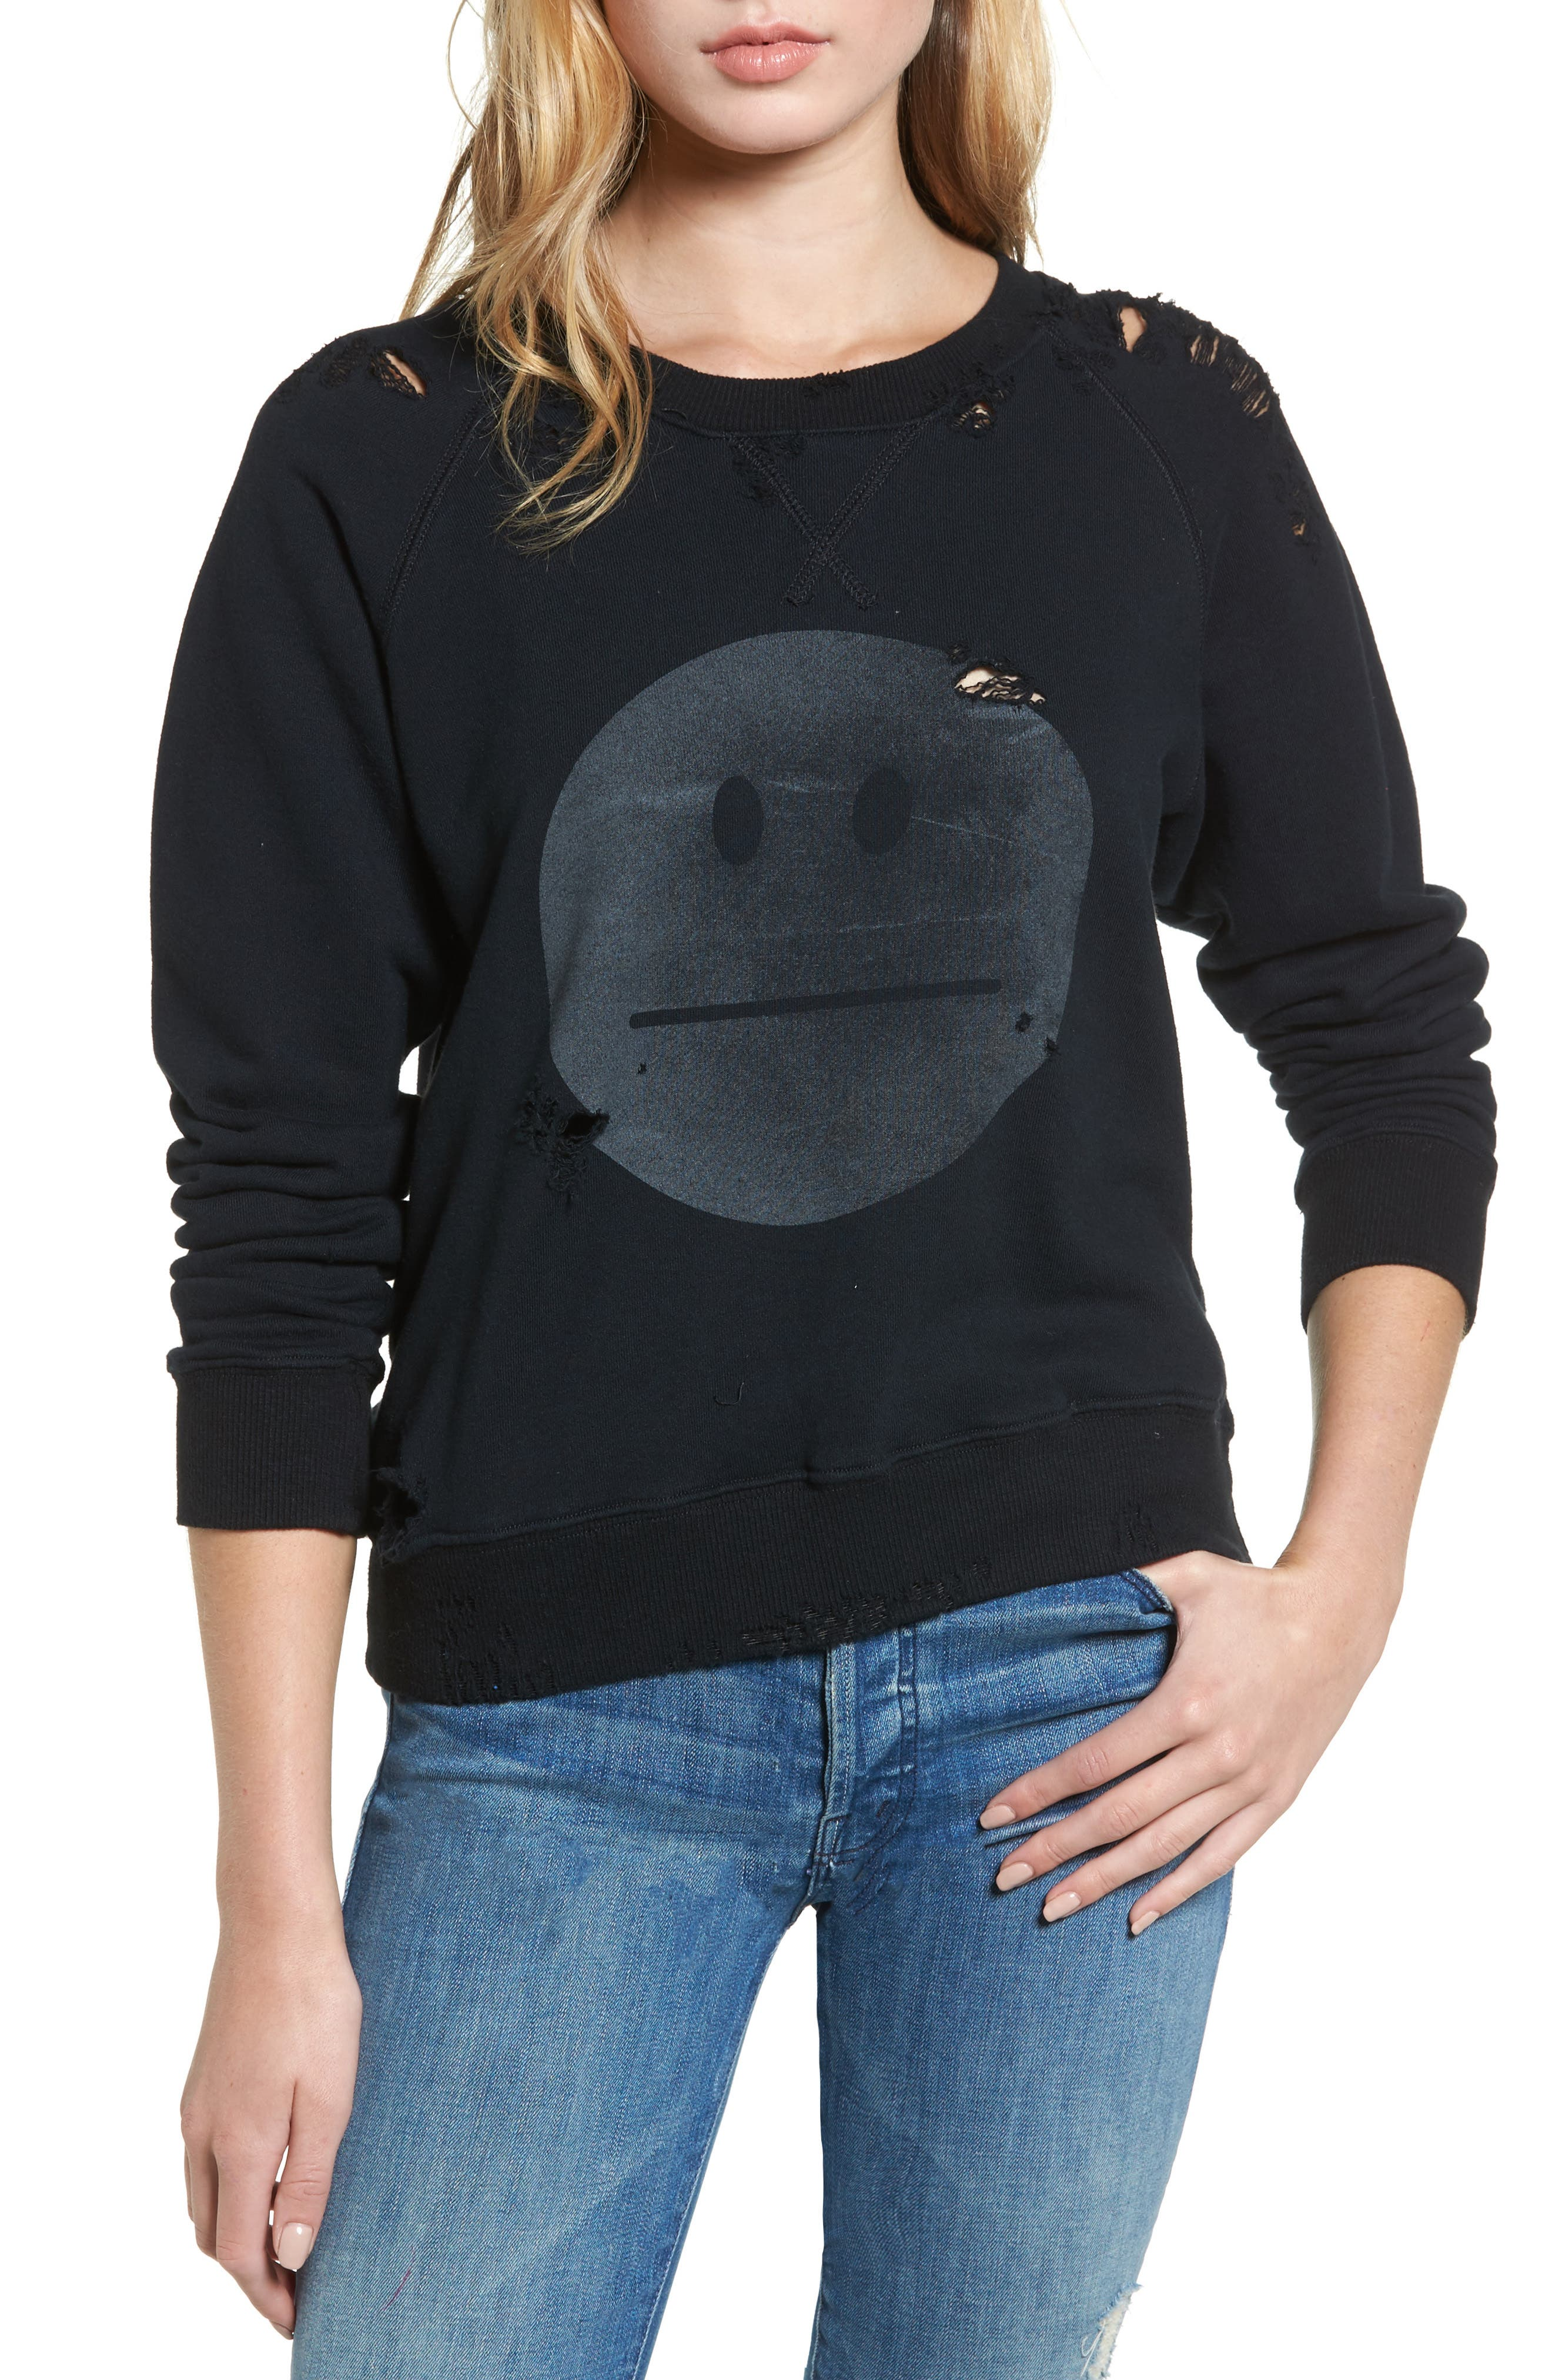 MOTHER 'The Square' Destroyed Graphic Pullover Sweatshirt